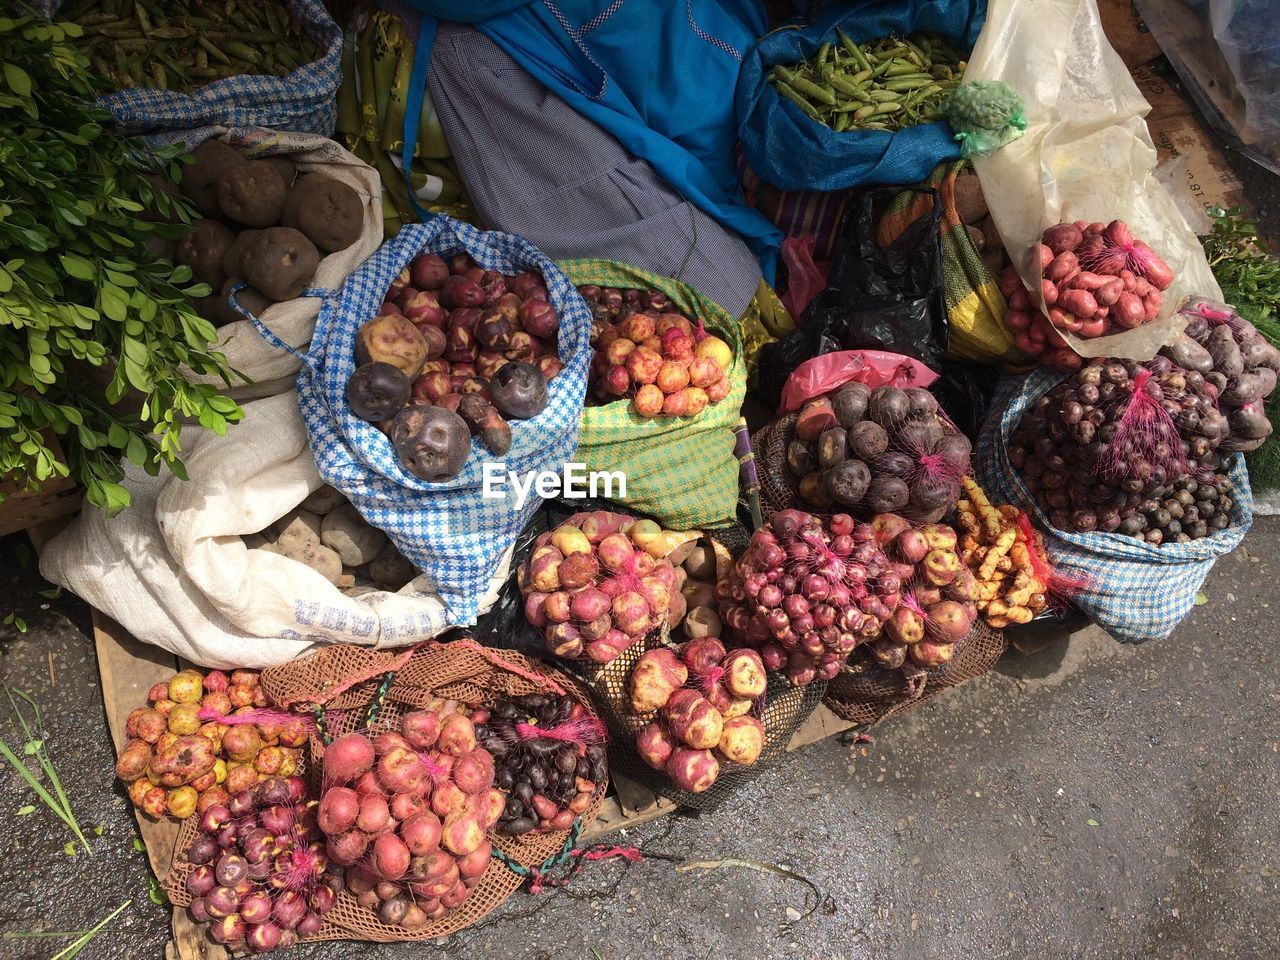 variation, basket, choice, food and drink, freshness, high angle view, vegetable, food, large group of objects, day, for sale, outdoors, healthy eating, market stall, abundance, retail, market, grape, fruit, no people, common beet